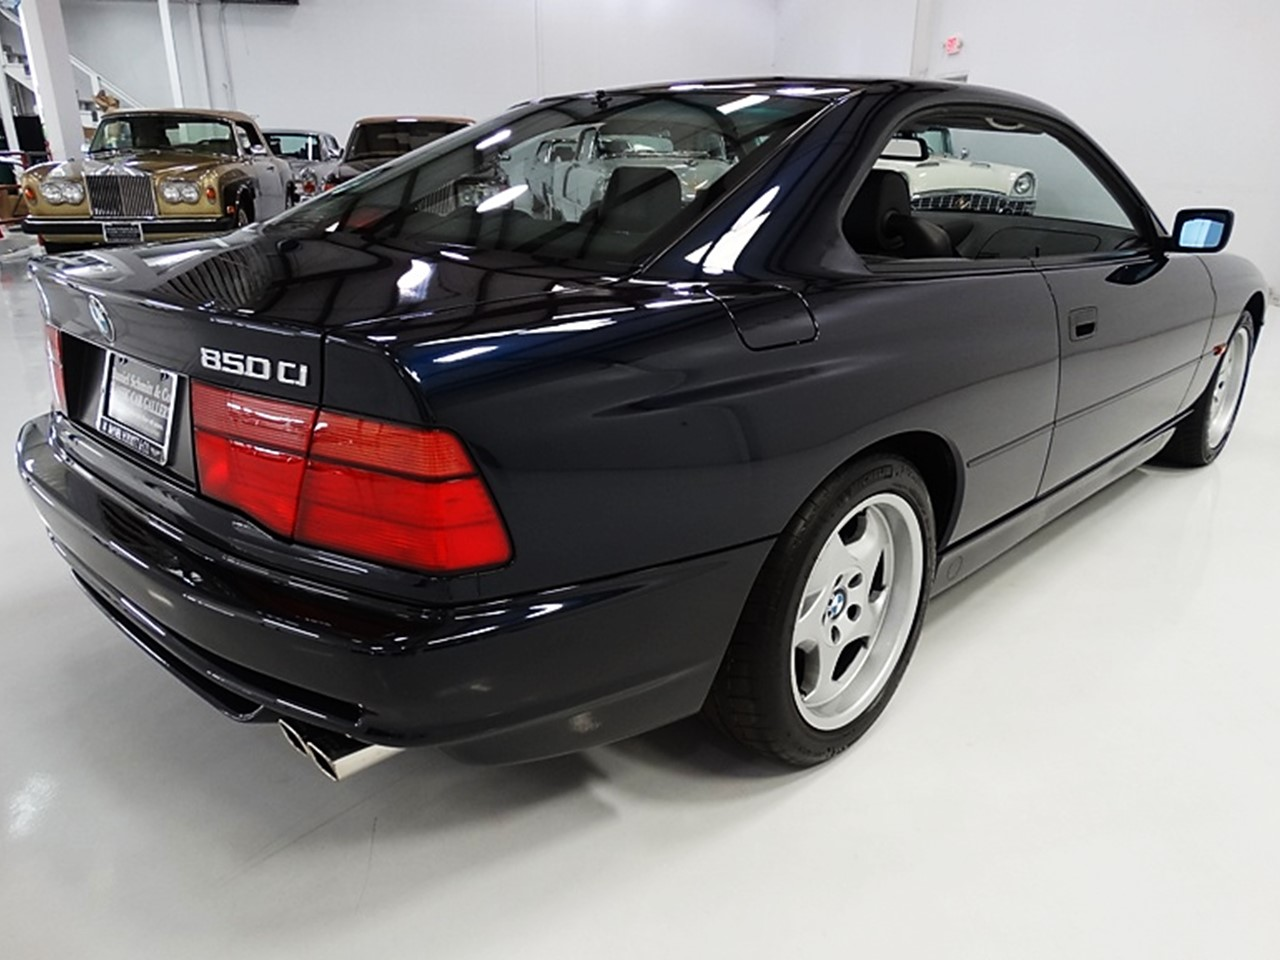 760670 Fs 1998 Lexus Ls400 Blk Blk Vip Stance 12k Obo in addition Bmw E46 V8 Drift Build together with Showthread moreover Modified Renault Laguna Mk2 1 8 2004 Pictures furthermore Showthread. on car b pillar